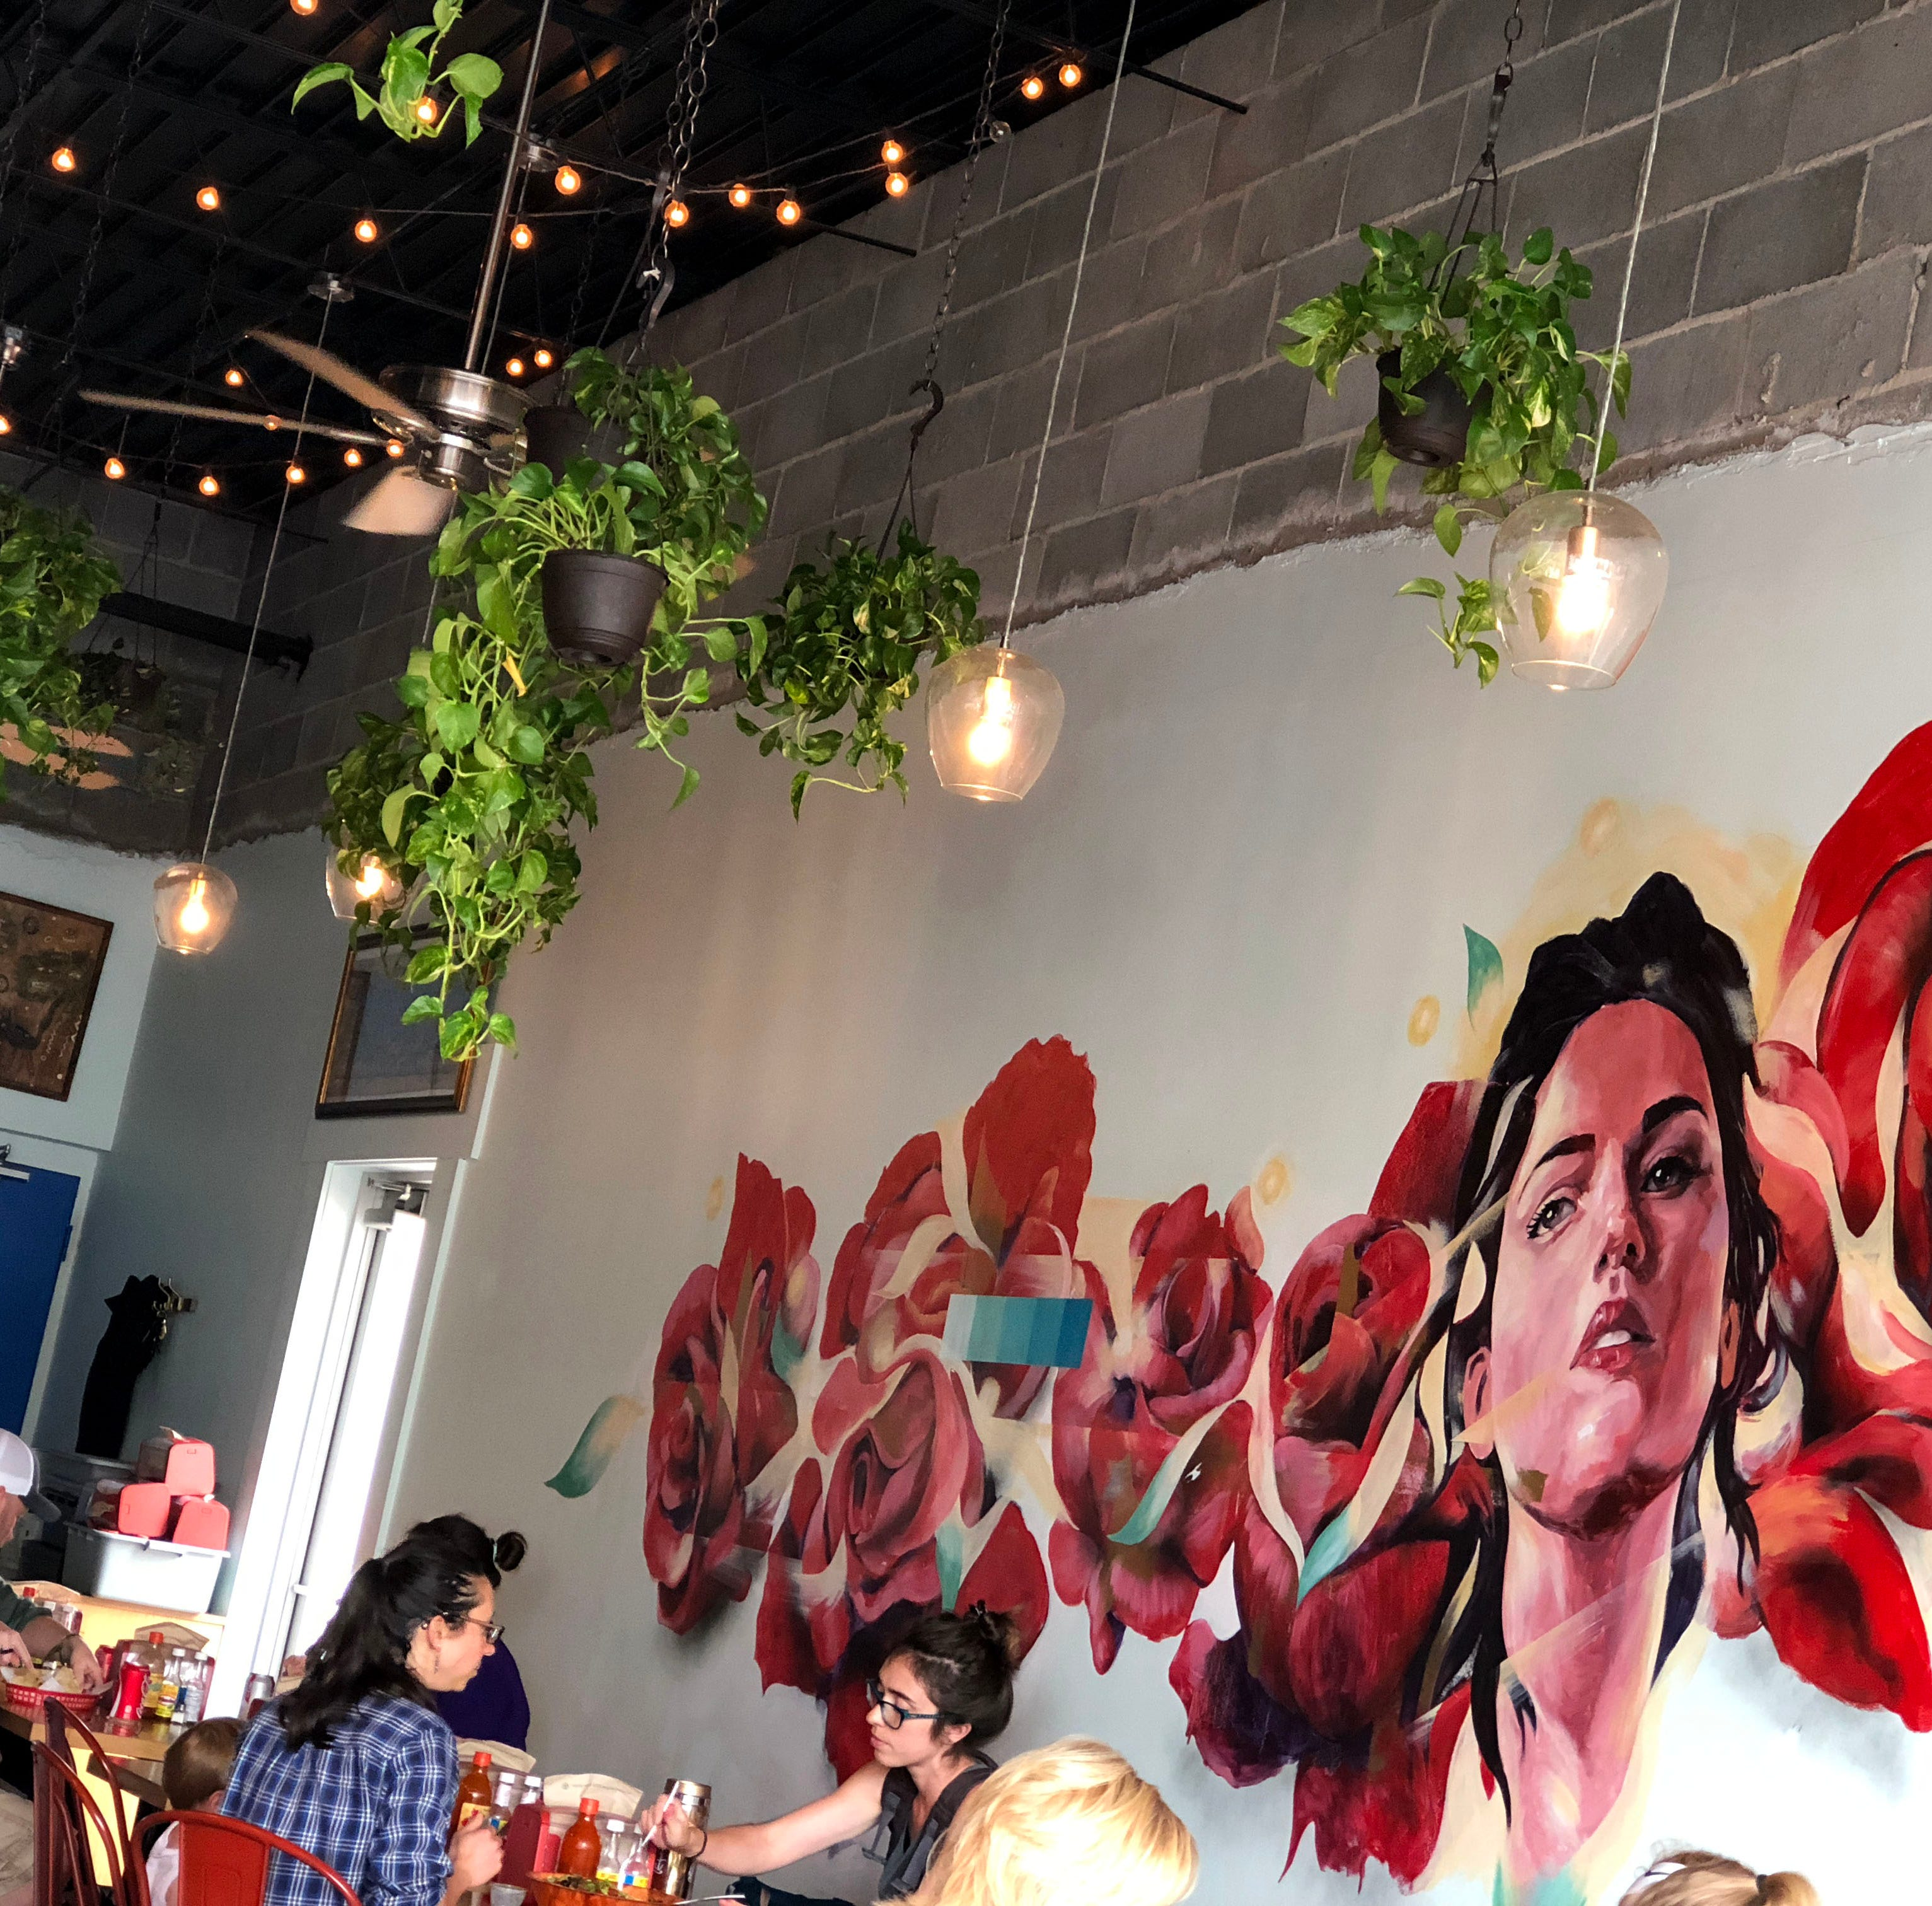 Chicano Boy Taco expanding into online ordering storefront, possible other locations